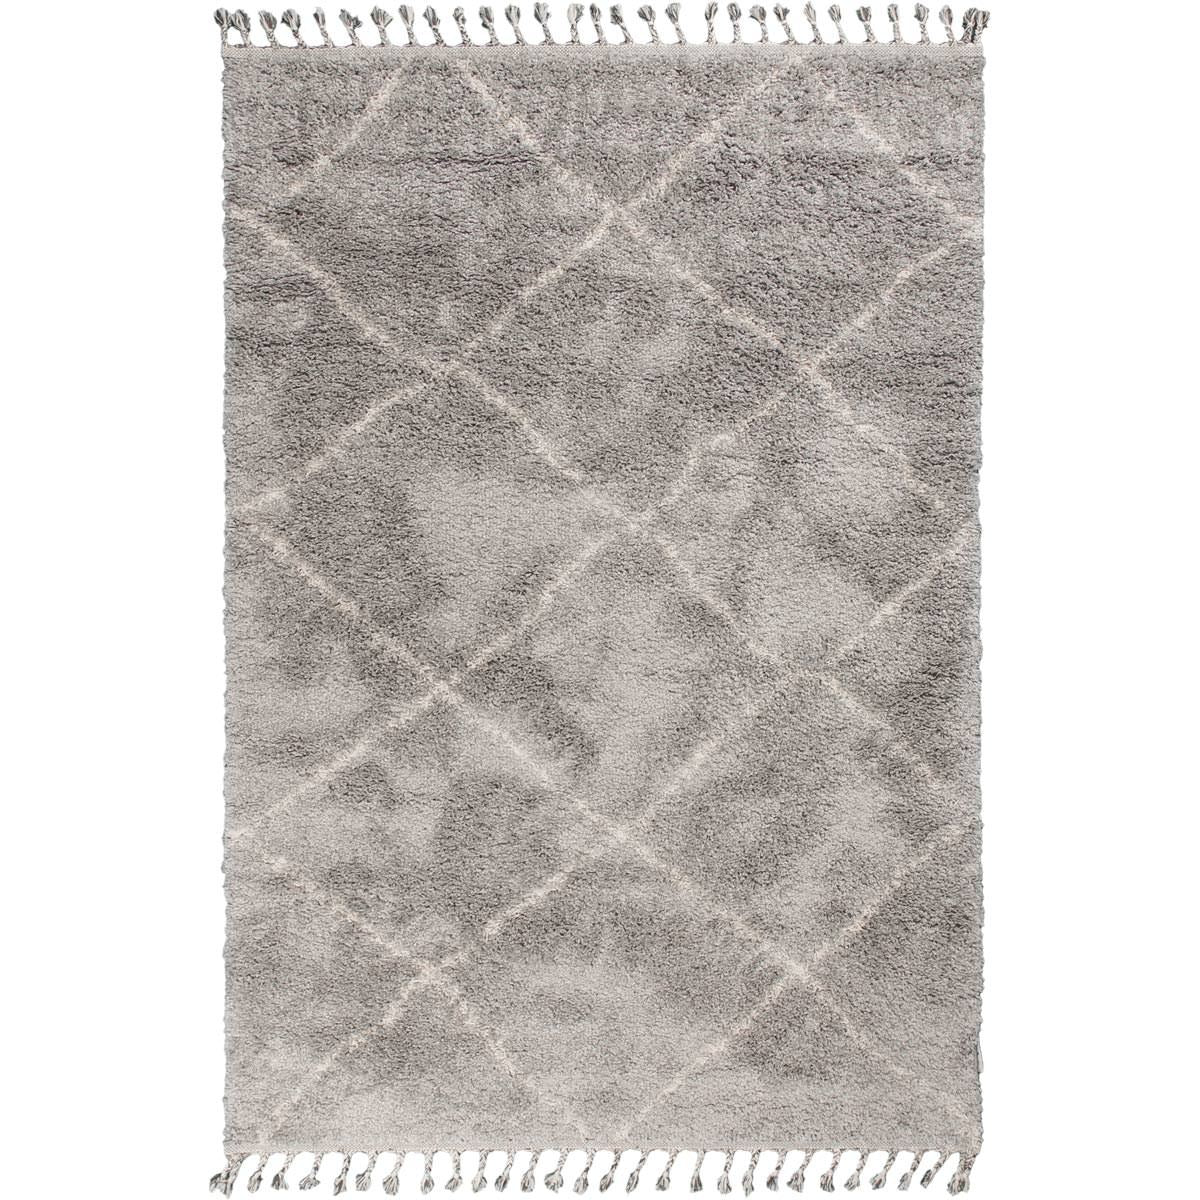 Shaggy Marrakech Rug 07 Grey/Cream 1